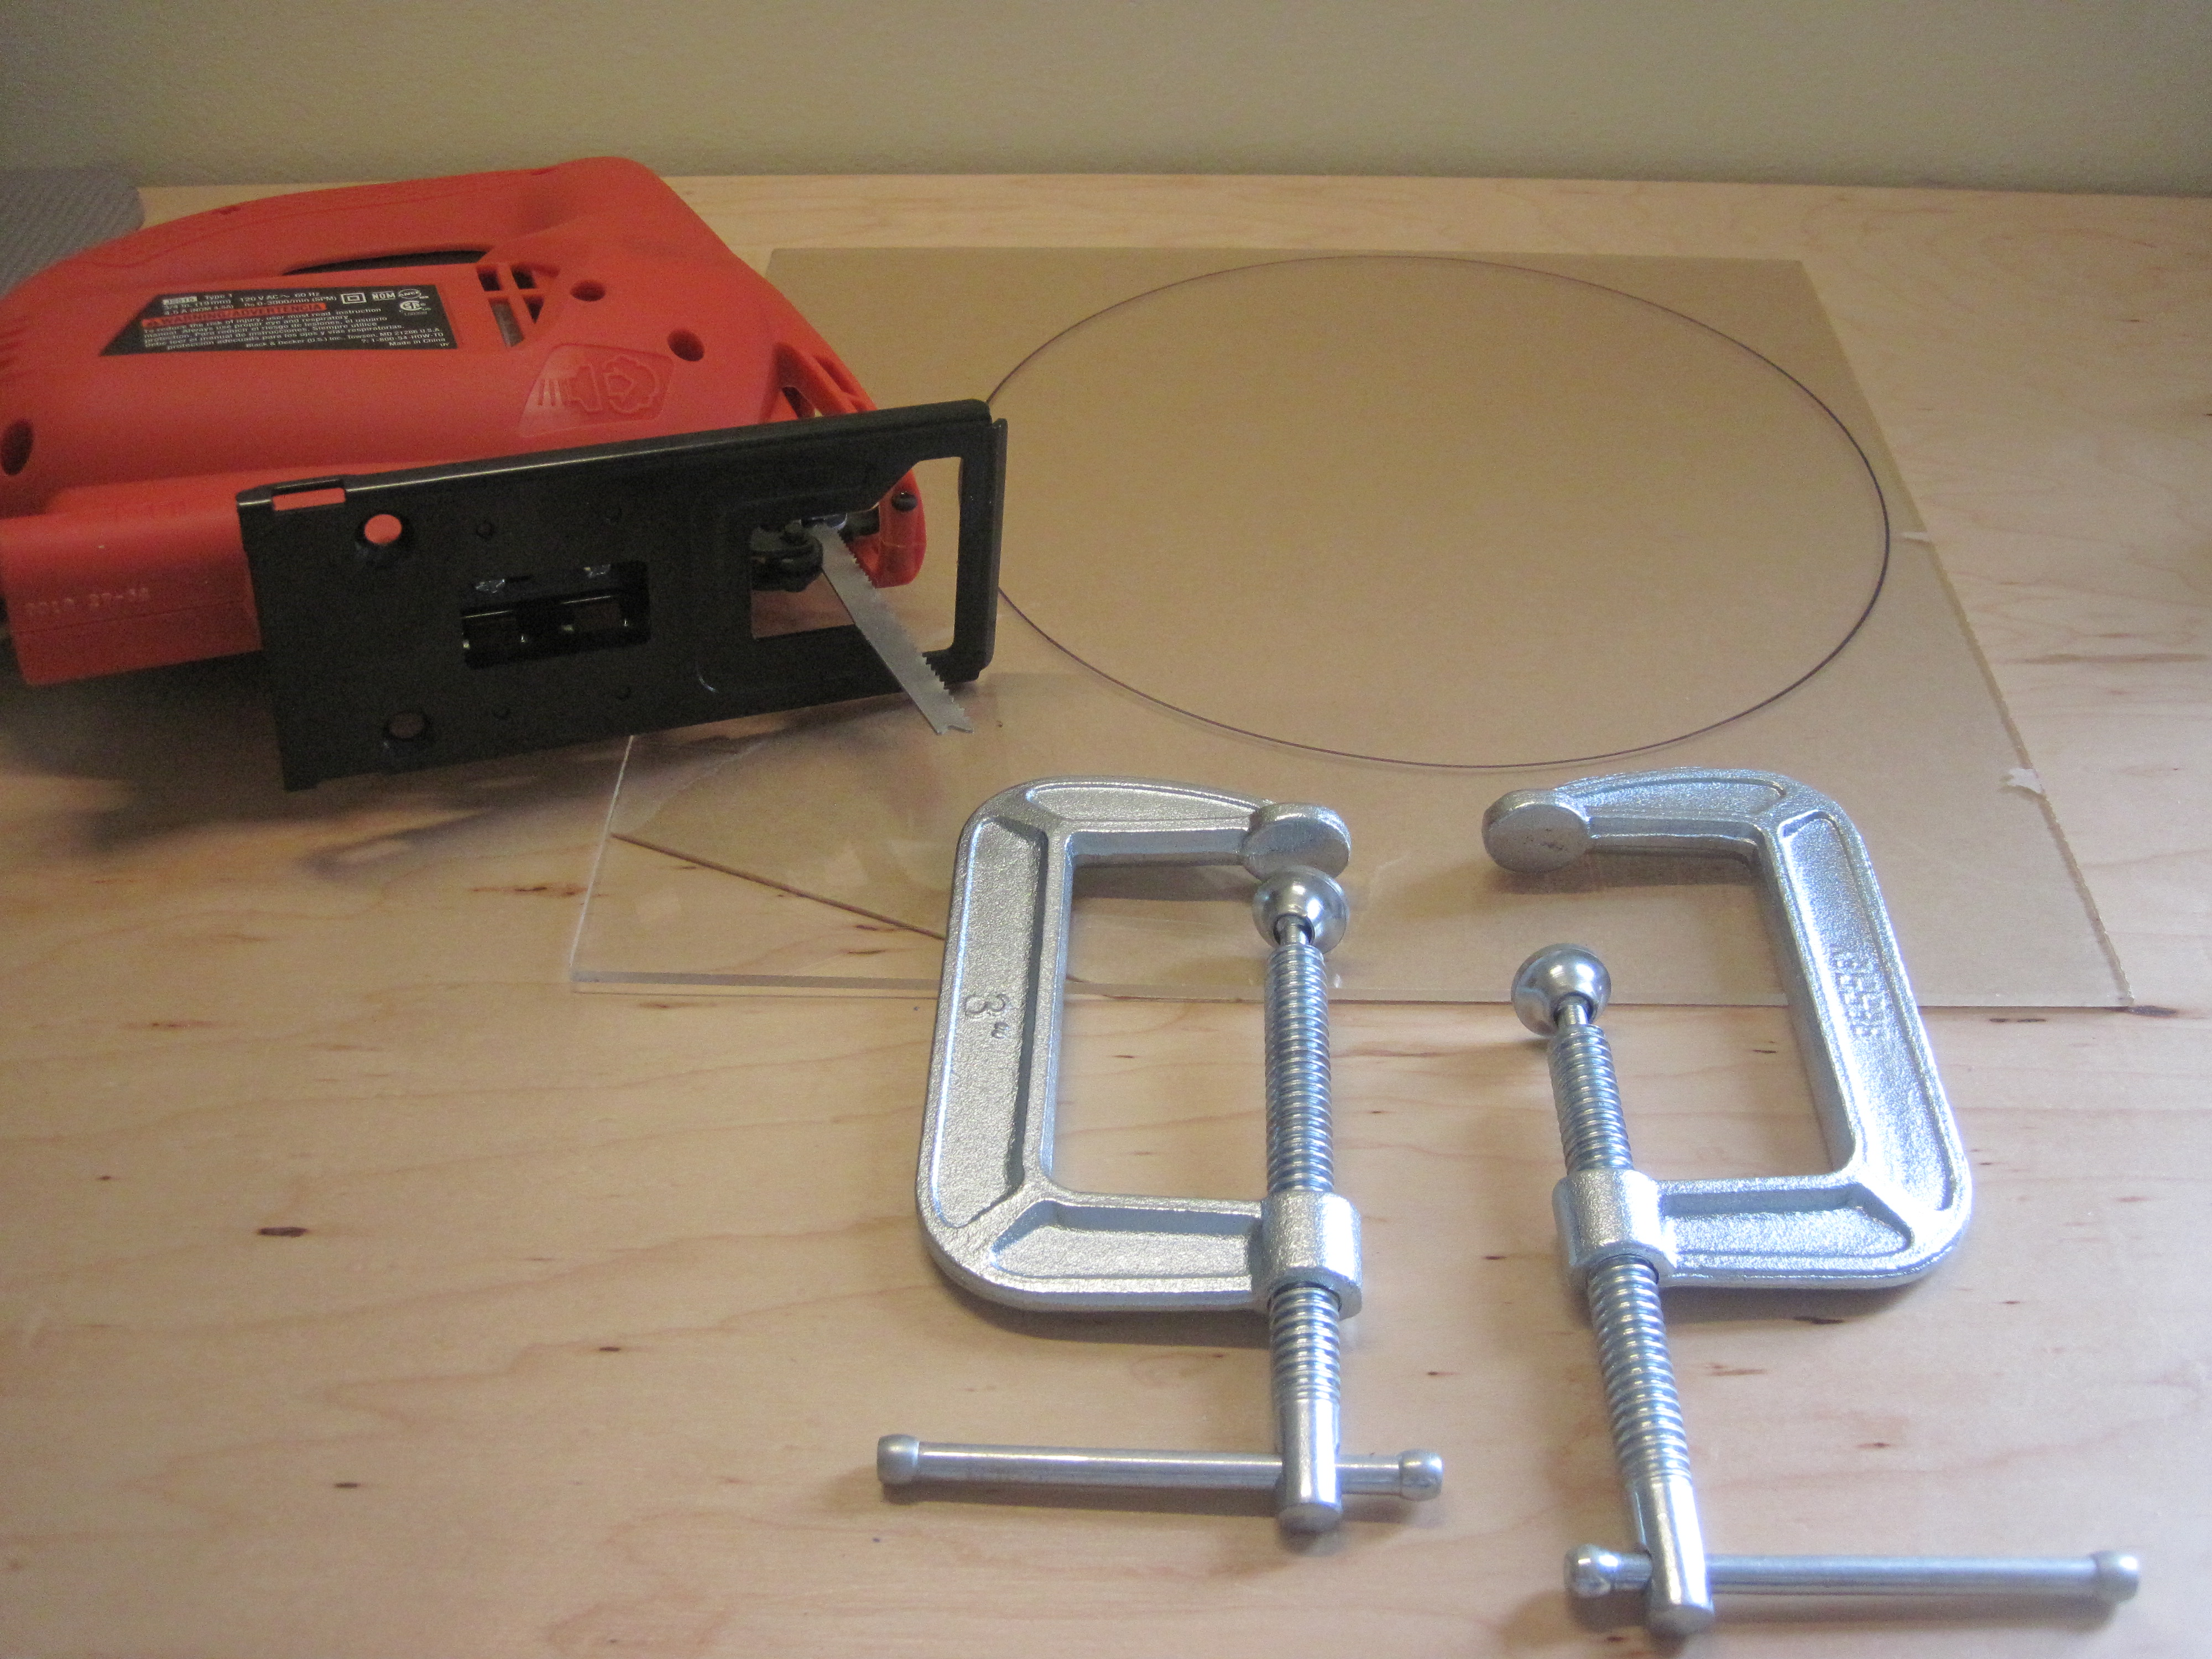 Picture of Cutting the Acrylic - Jigsaw